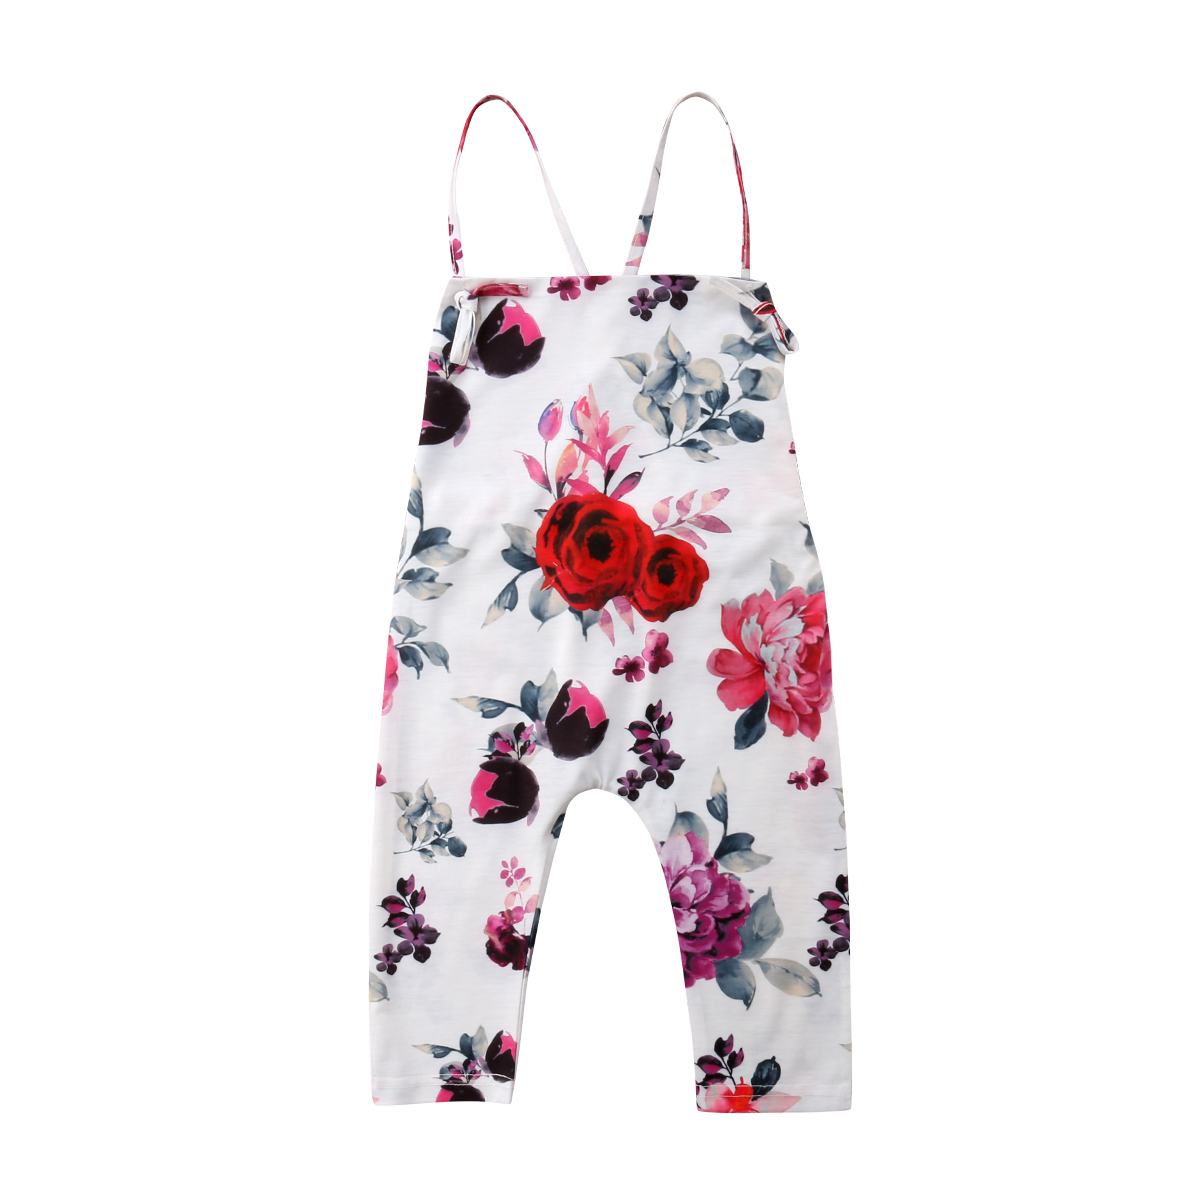 1-6Y Kids Baby Girls Floral Romper Sleeveless Summer Baby Girl Jumpsuit Girls Flower Clothing